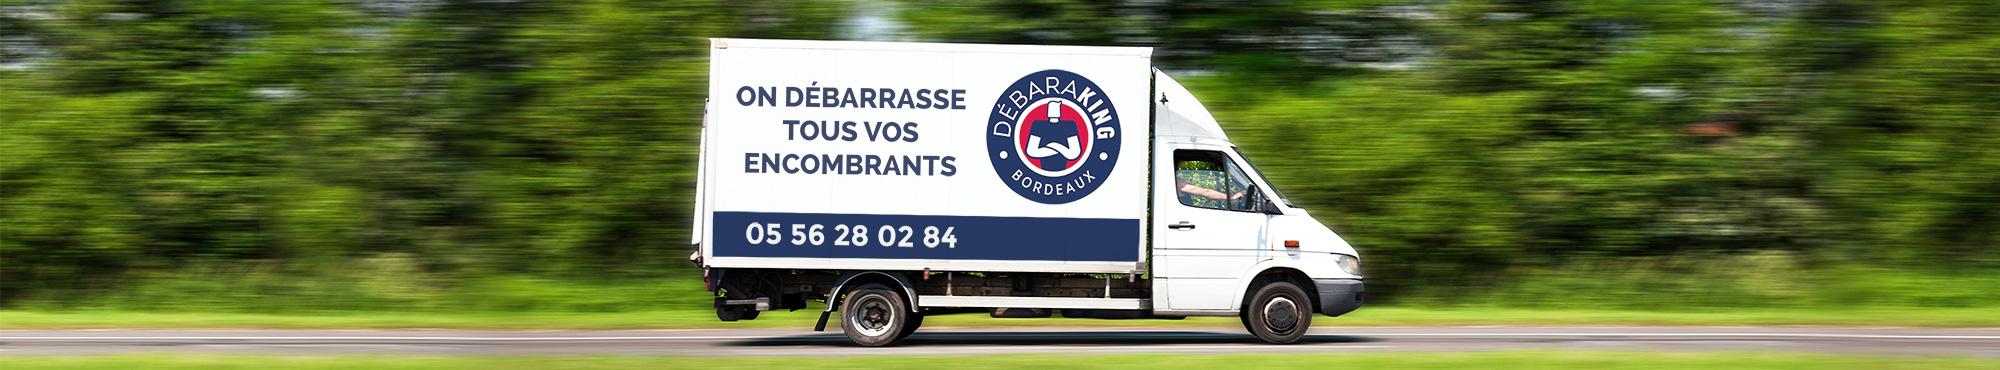 Debaraking : On débarrasse tous vos encombrants